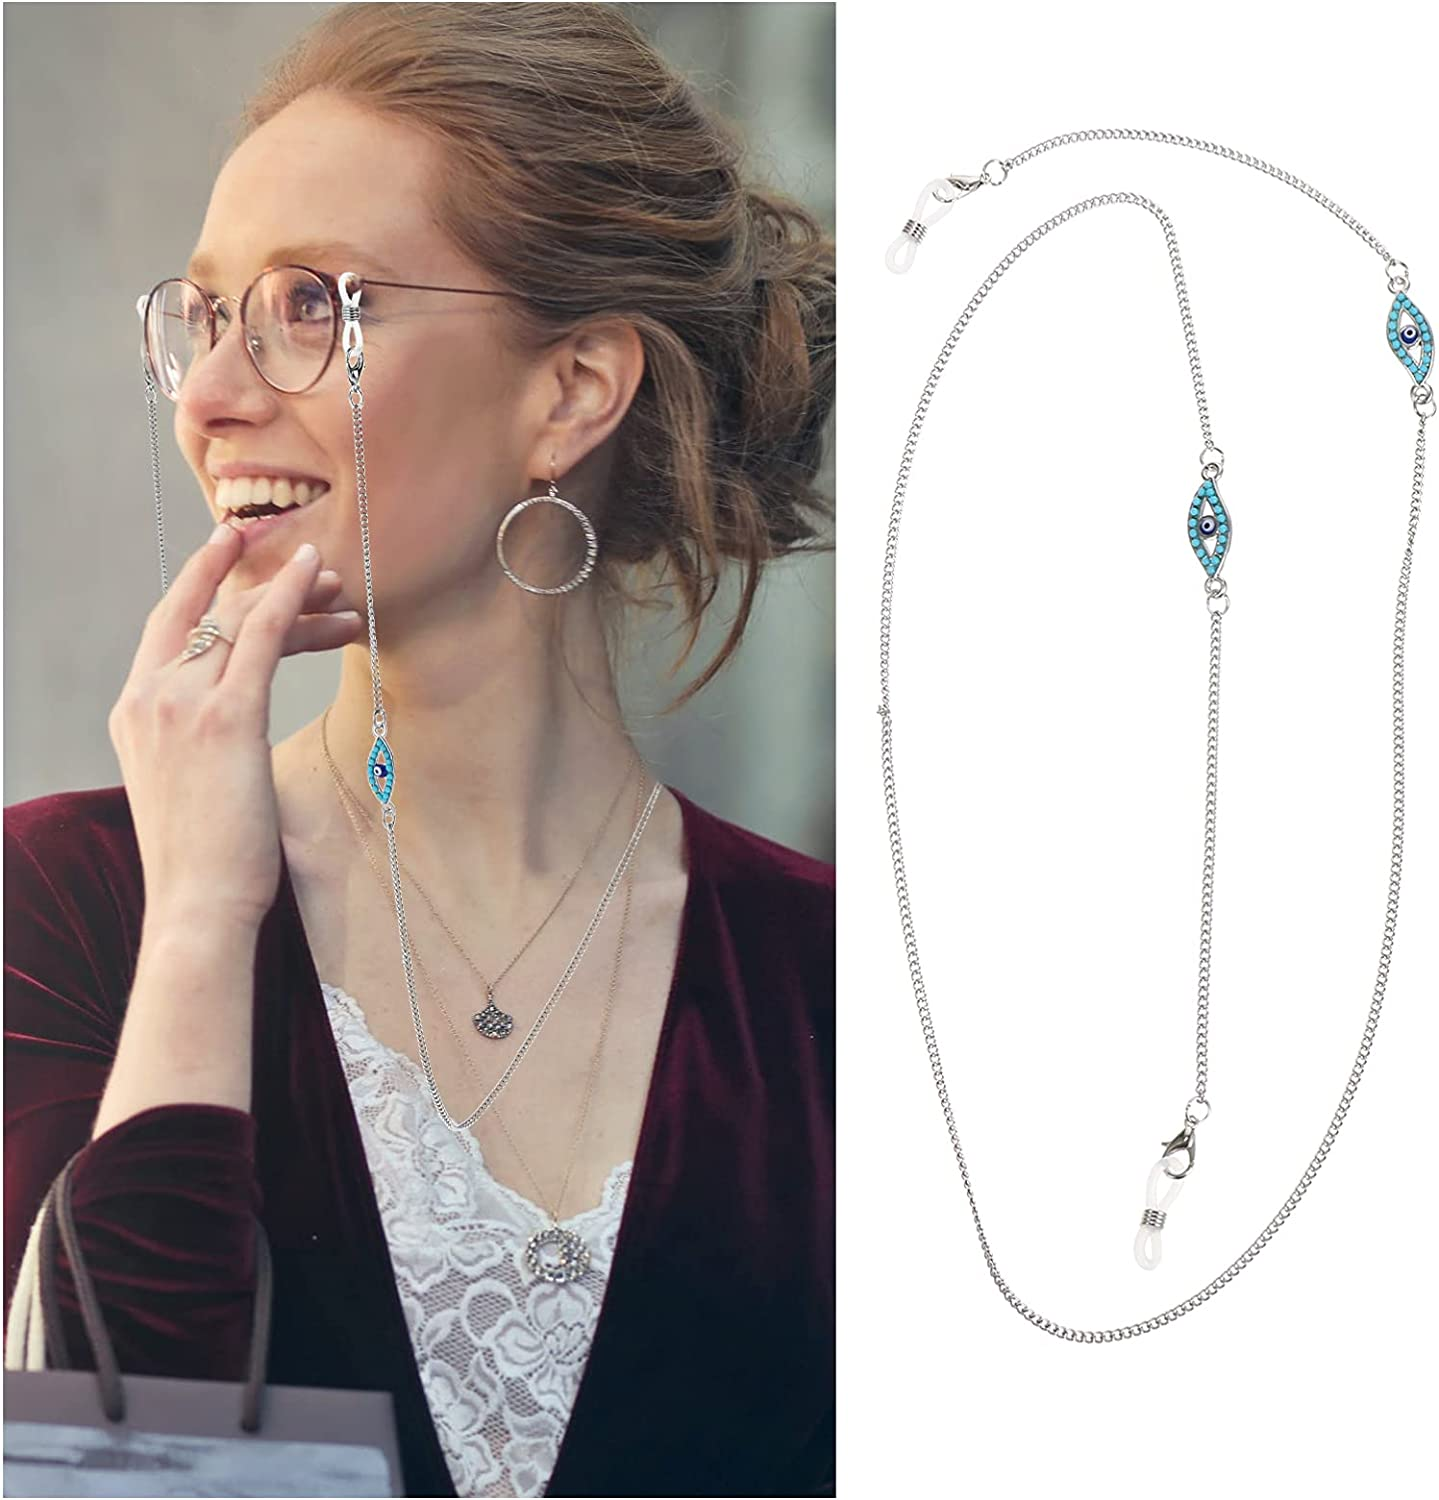 DOITOOL Eyeglass Chain Sunglasses String Holder Anti Lost Beaded Glass Chains Retainer Strap 73cm Glasses Lanyard Chain Cord Strap Keeper